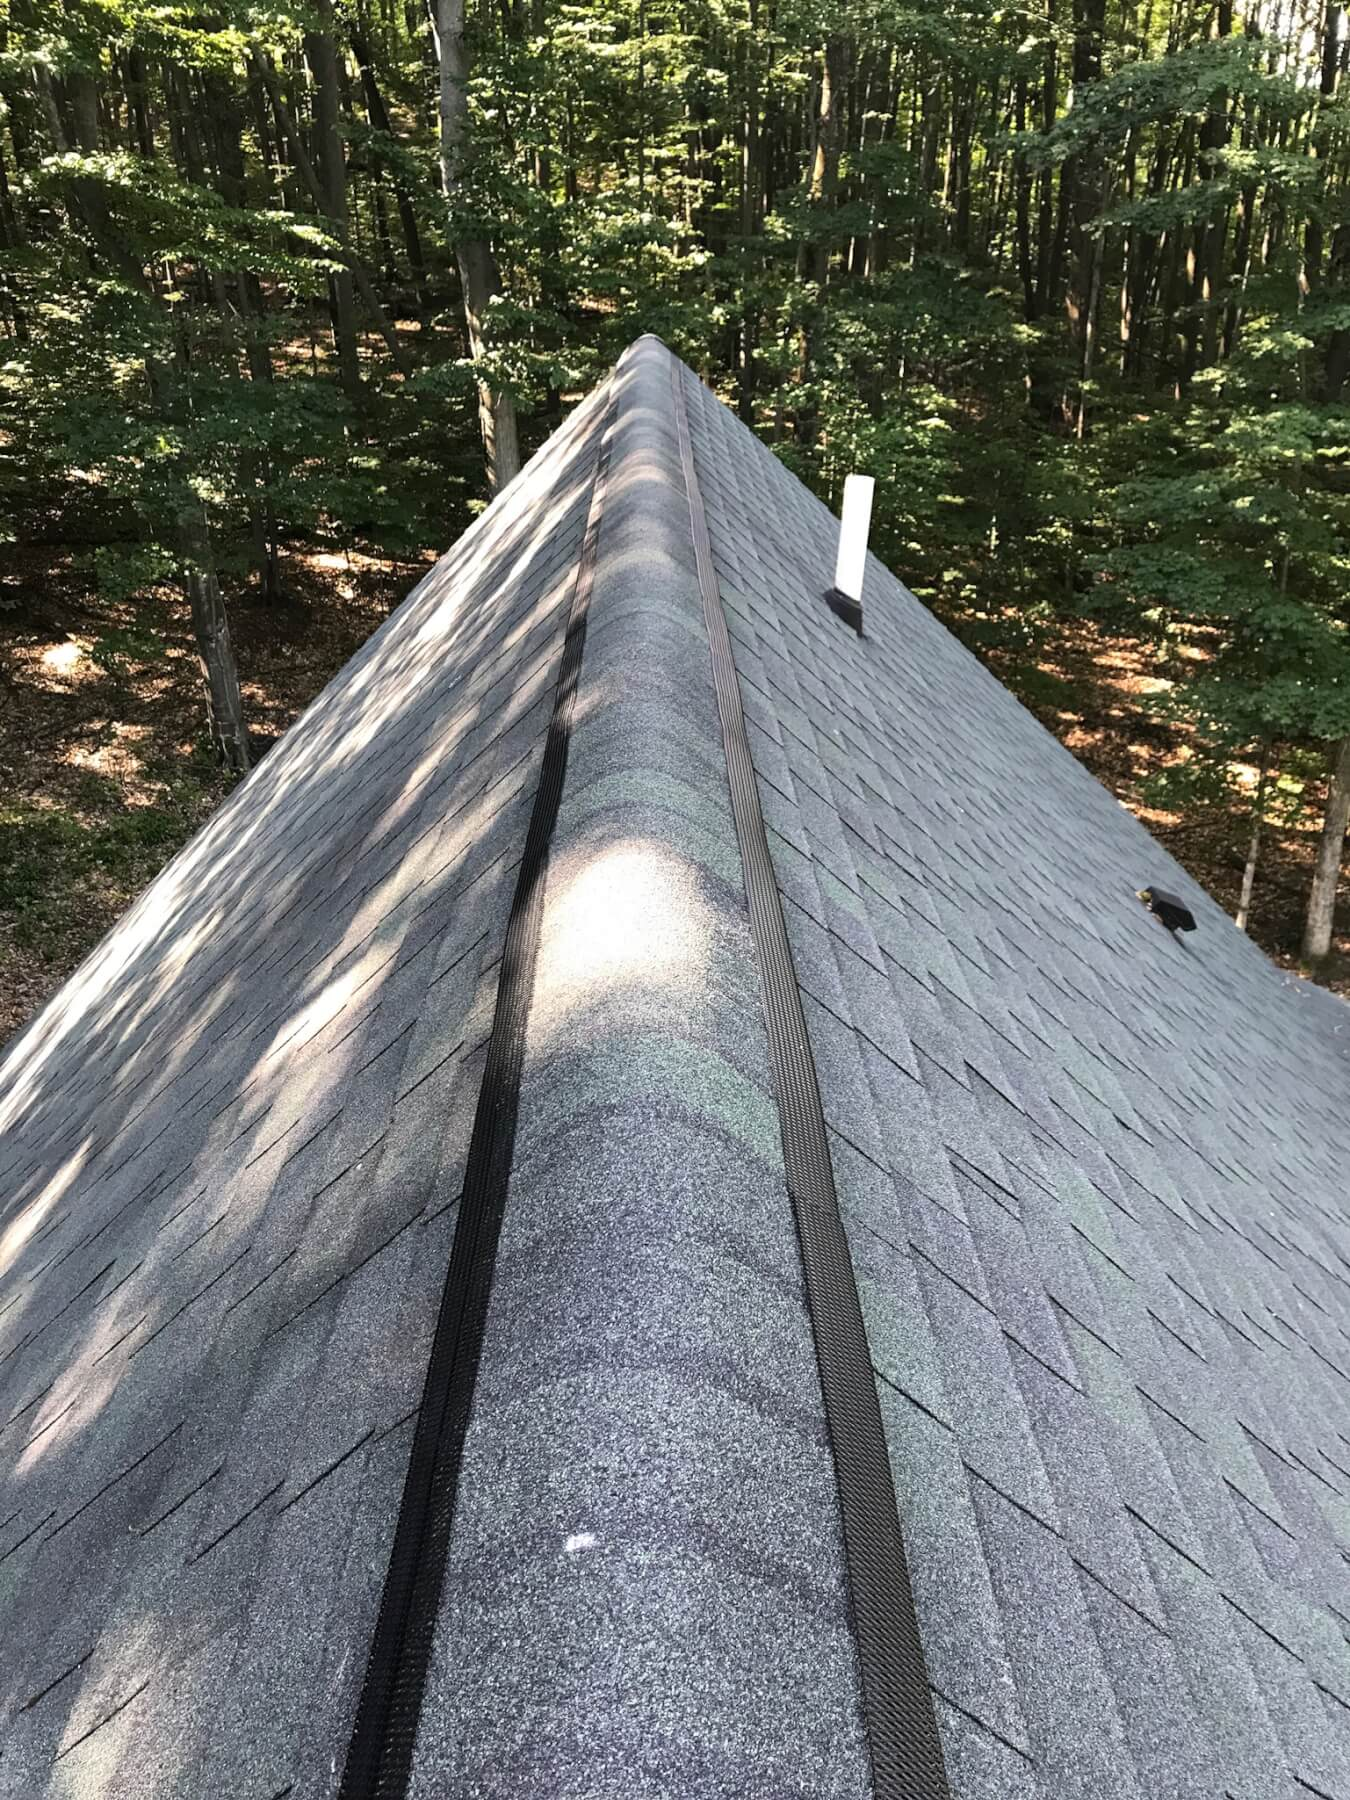 Ridge Vent Exlusion Hogarth S Pest Control In Northern